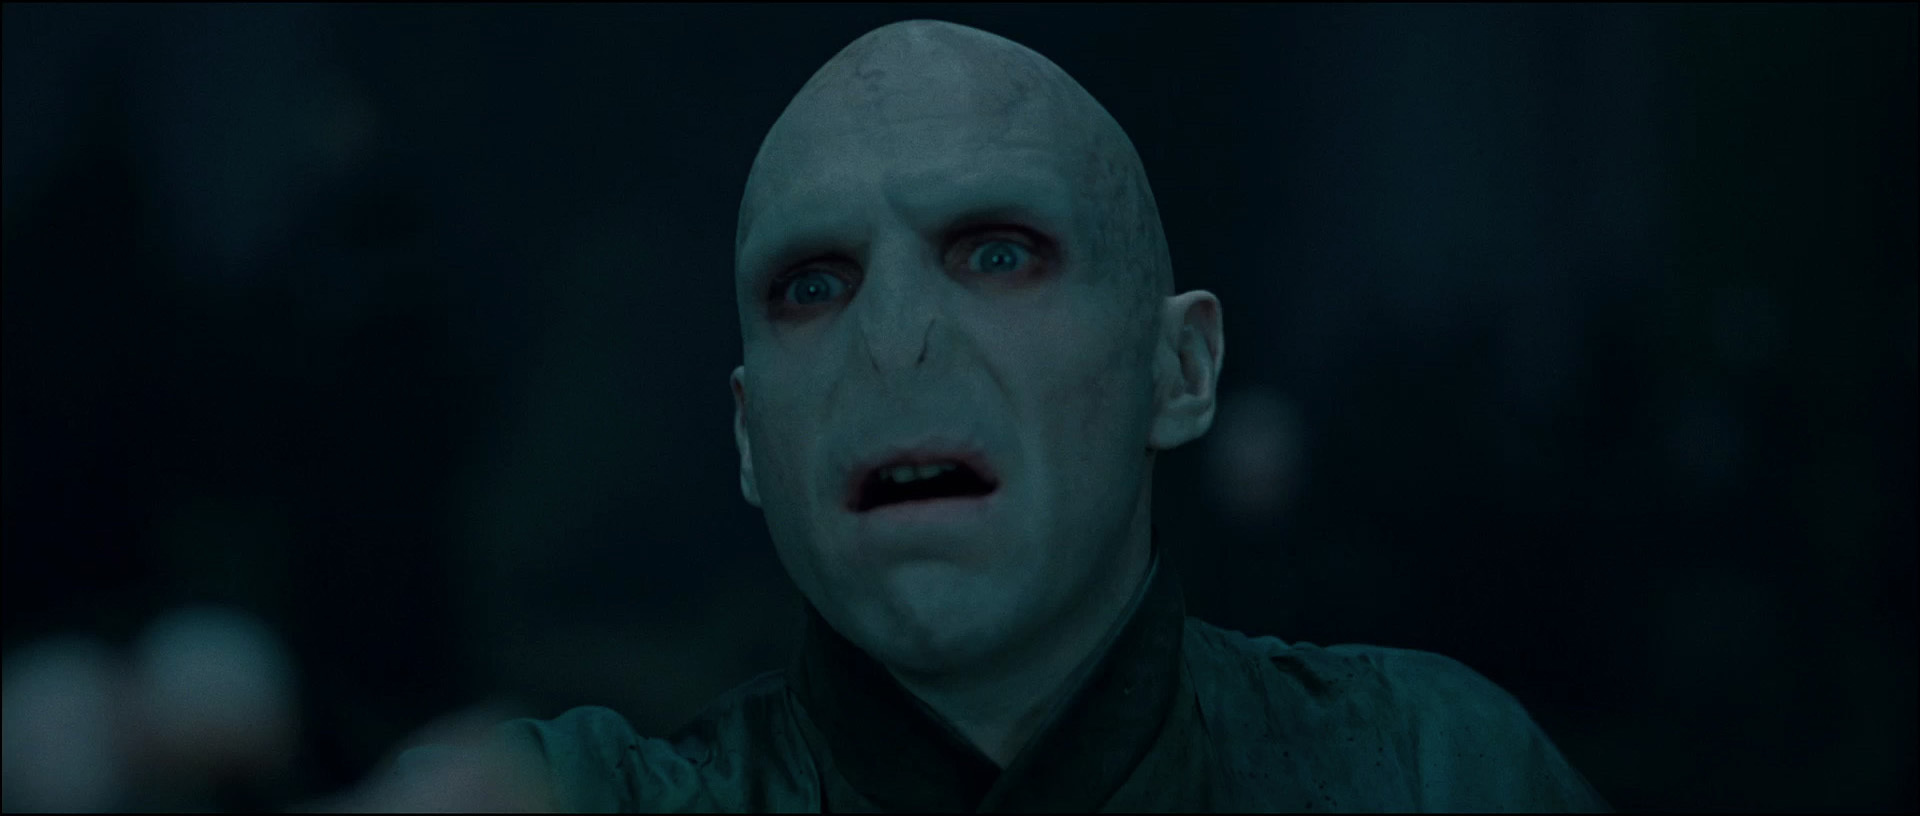 harry potter and lord voldemort images harry potter and the harry potter and lord voldemort images harry potter and the deathly hallows trailer hd and background photos